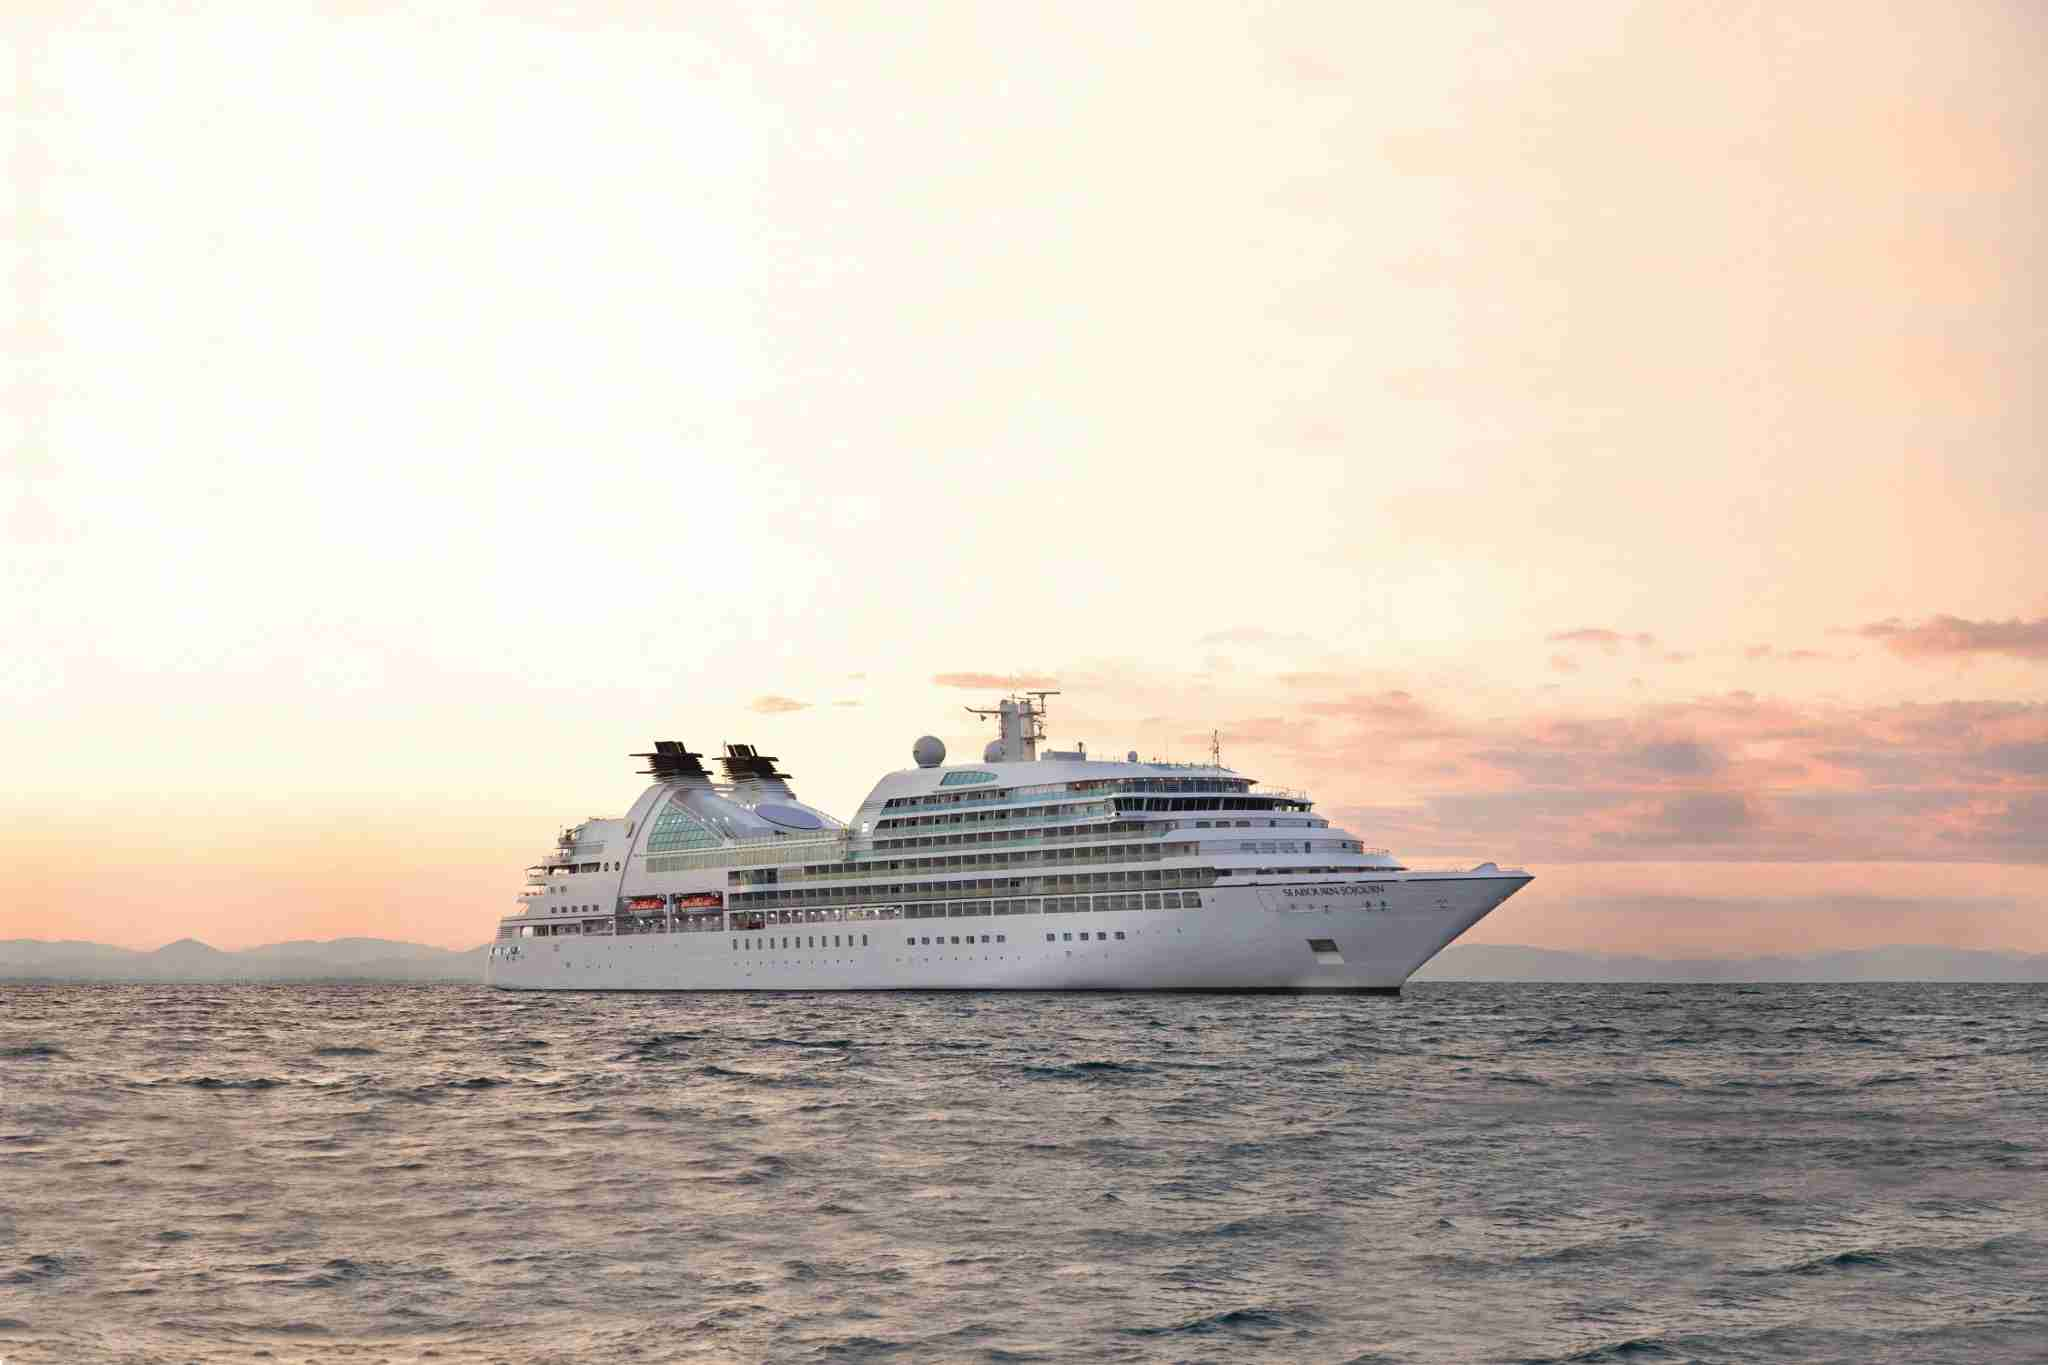 Photo courtesy Michel Verdure / Seabourn.